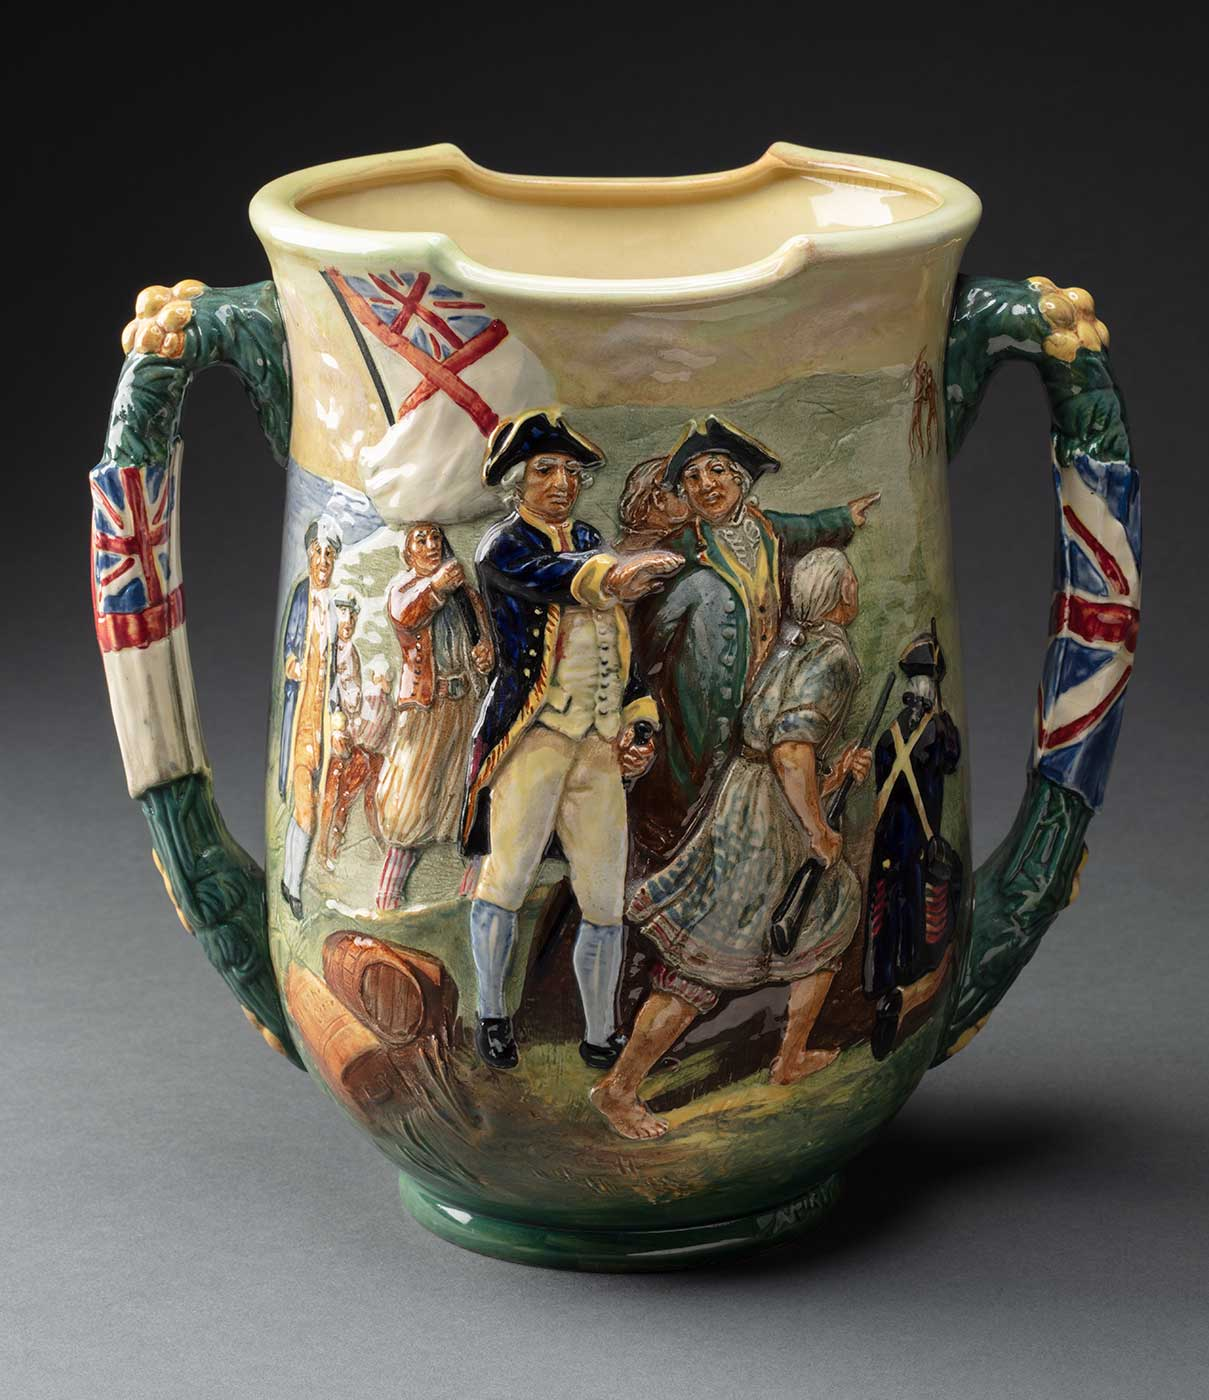 Royal Doulton loving cup (with two handles) depicting a scene of the early Australian colony. One one side Captain Cook and eight other men are shown in relief, with two figures of Indigenous men painted in the background. On the other side a sailing ship and two rowboats are shown with four figures on the shore in the foreground and several figures with the rowboats. Flags are depicted on the handles. The underside is stamped with 'Captain Cook / The Greatest Navigator / ... / Through storm & shine / alone on unknown - / seas. The Endeavour / anchored in Botany Bay / ub tge tear if iyr Kird / 1770' and 'The production of this cup / is limited to 350 / no. 215'. The trademark stamp reads 'Made in England / Royal Doulton / Registered / in Australia / No. 10610'. - click to view larger image